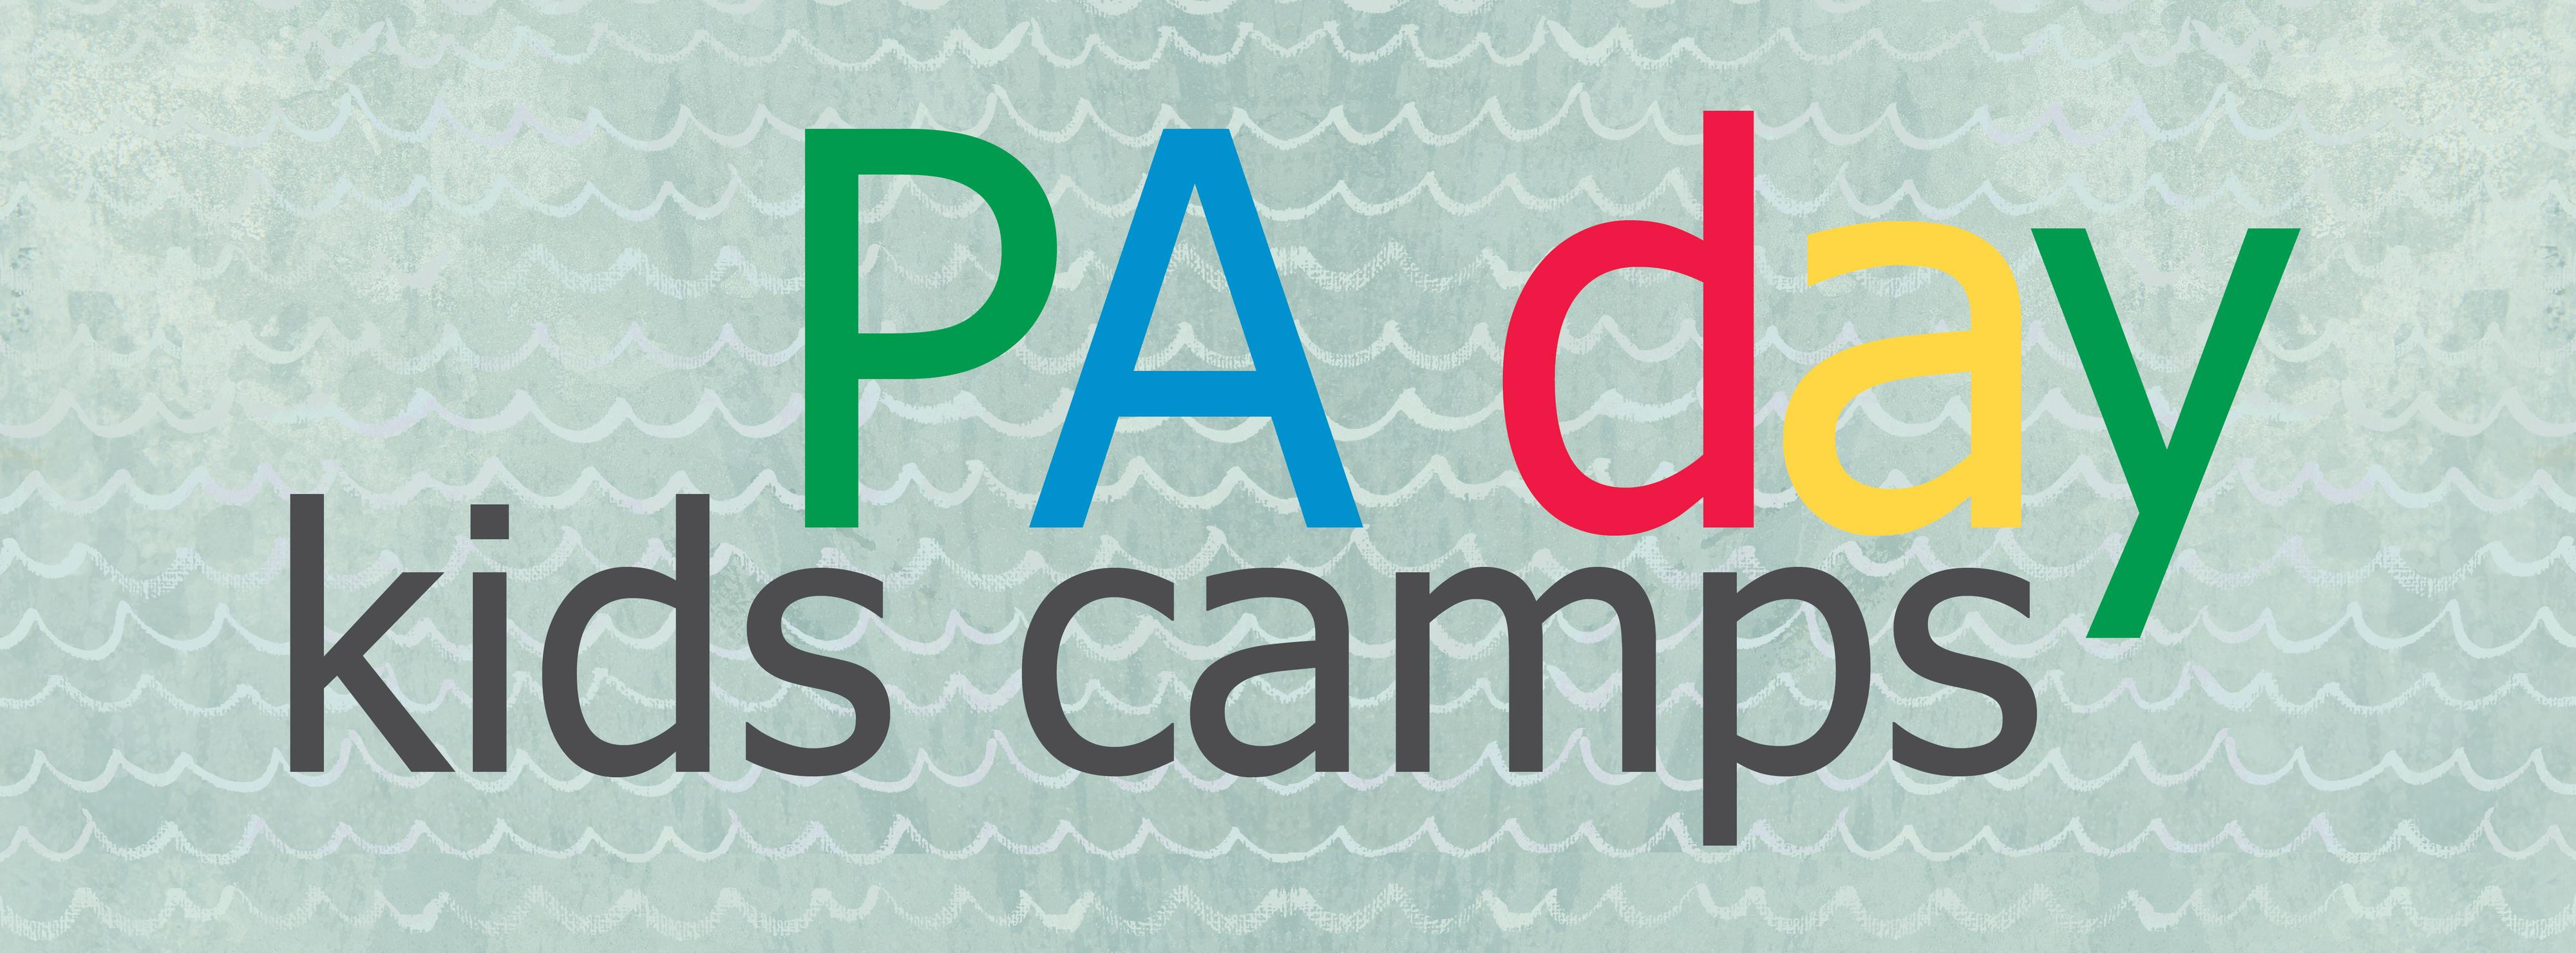 PA Day Camp Info